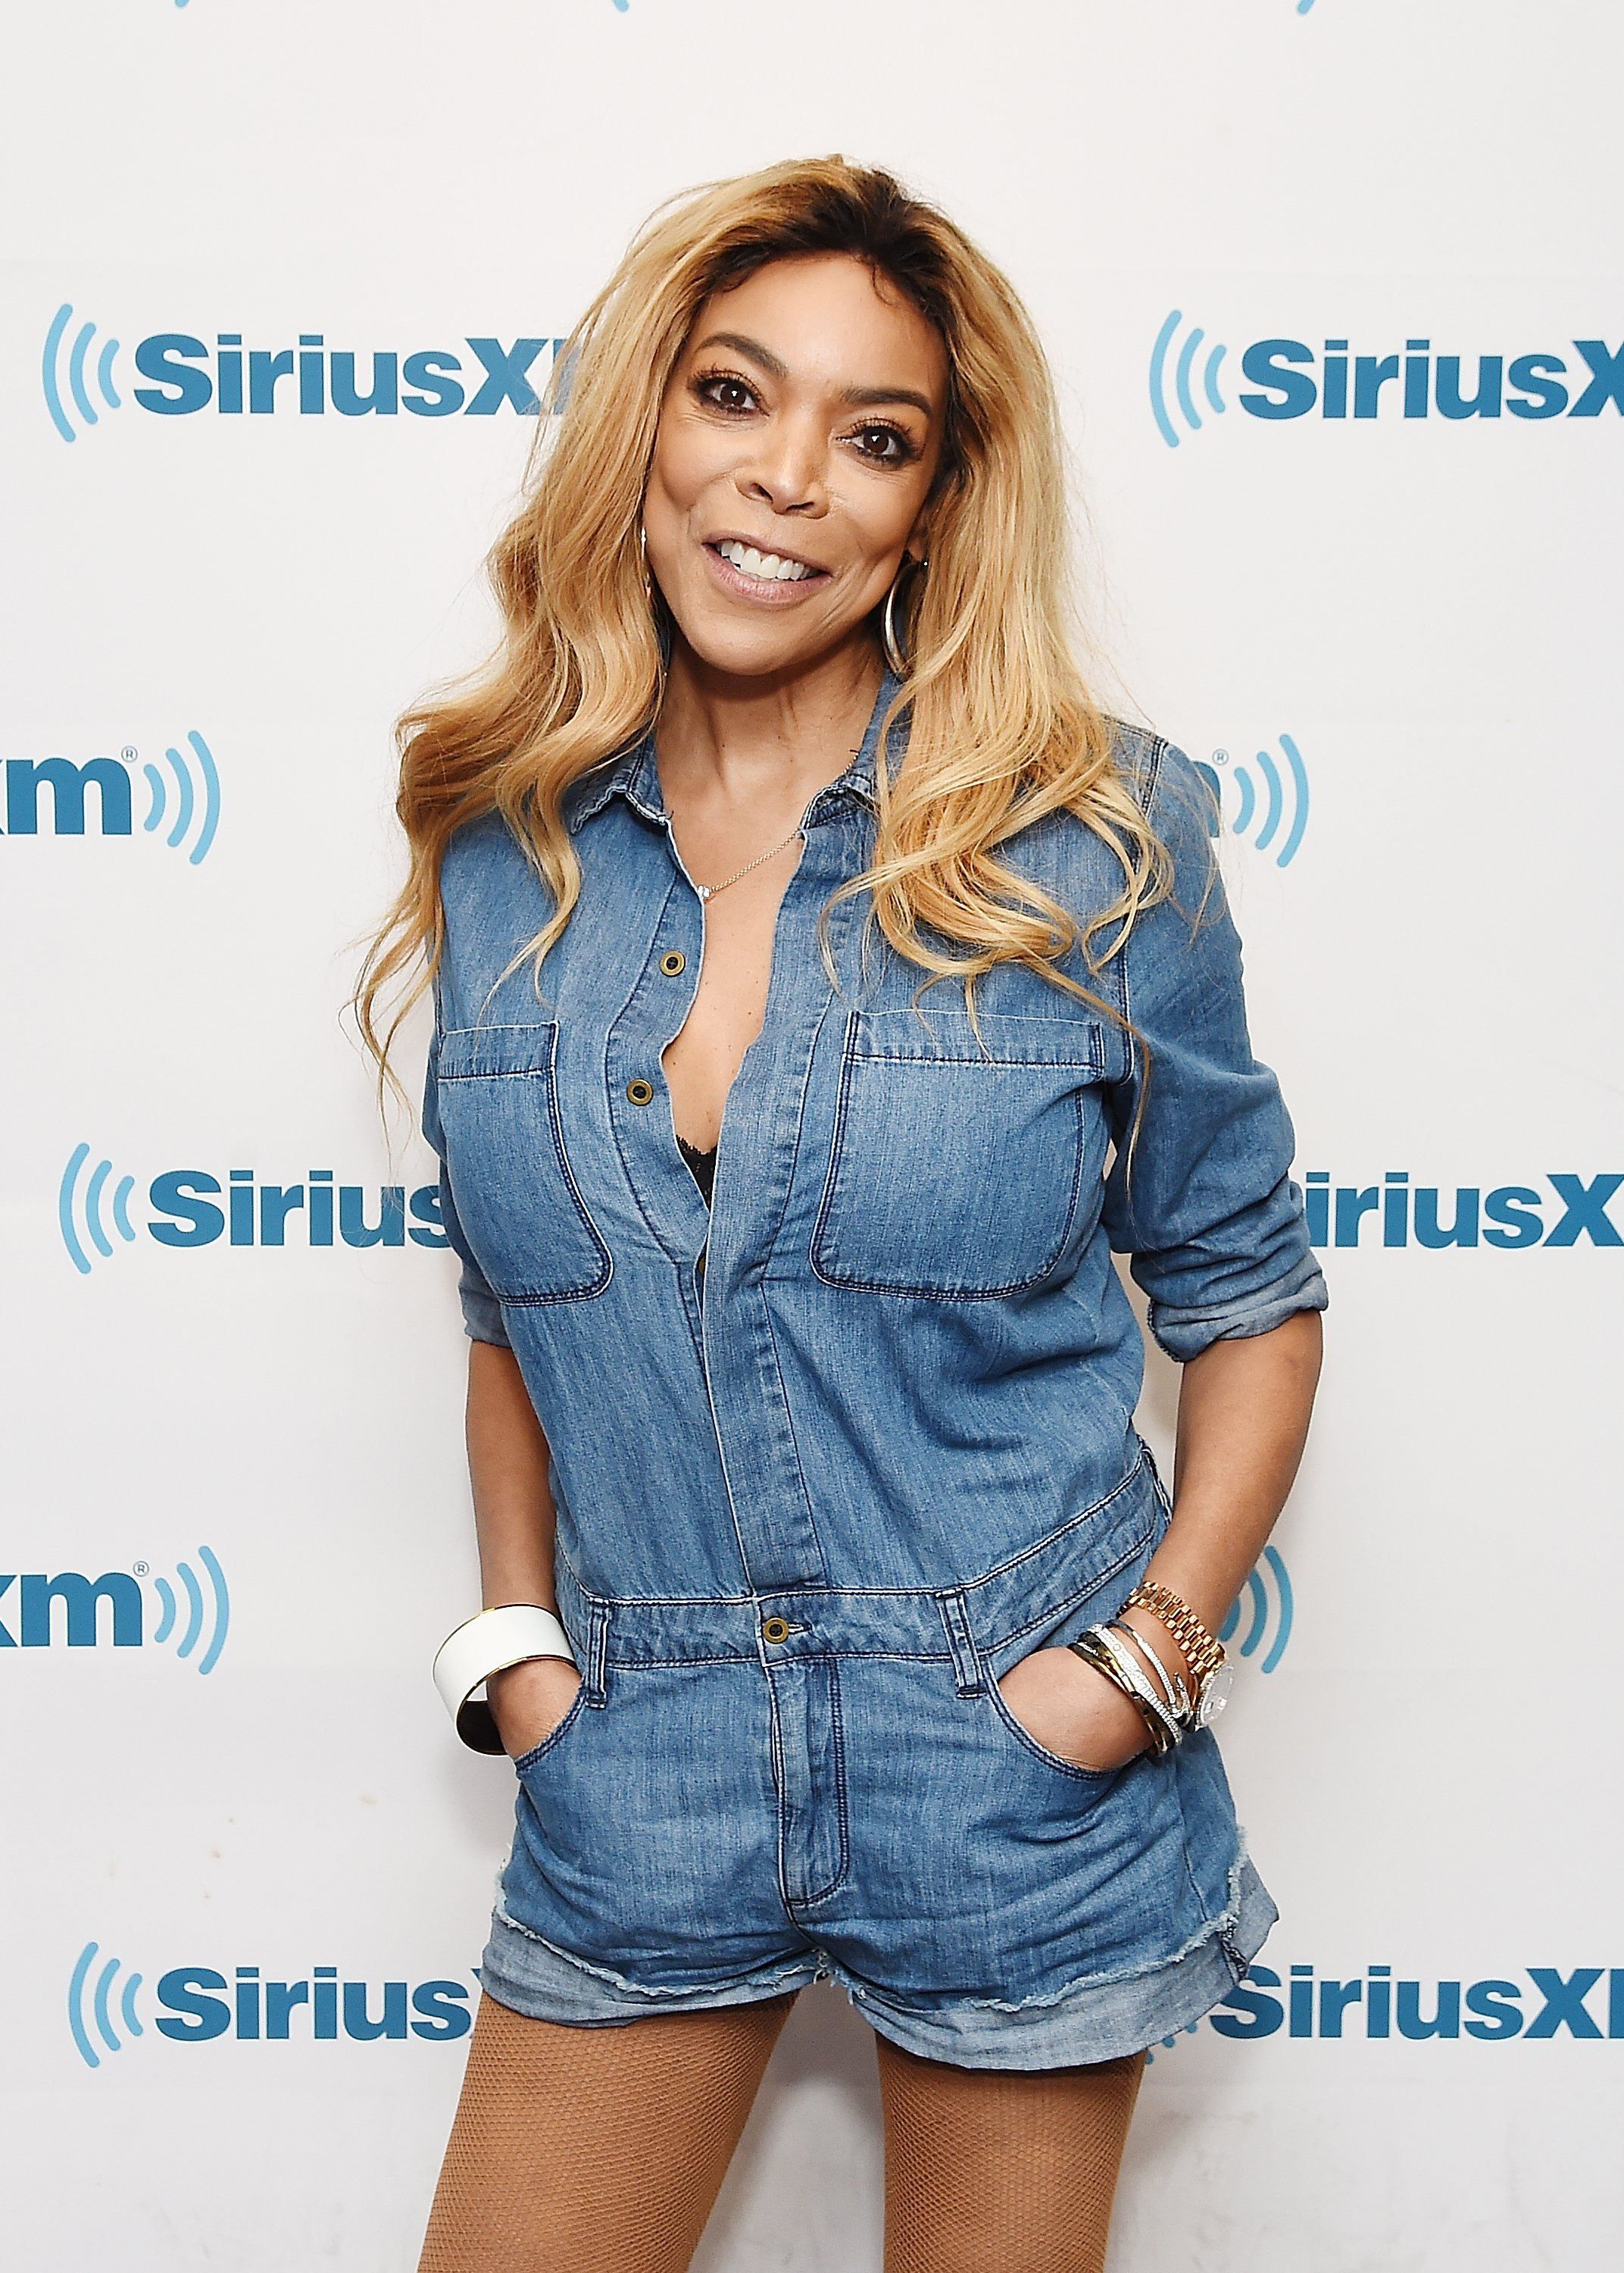 Wendy Williams at the SiriusXM headquarters in July 2017 | Source: Getty Images/GlobalImagesUkraine